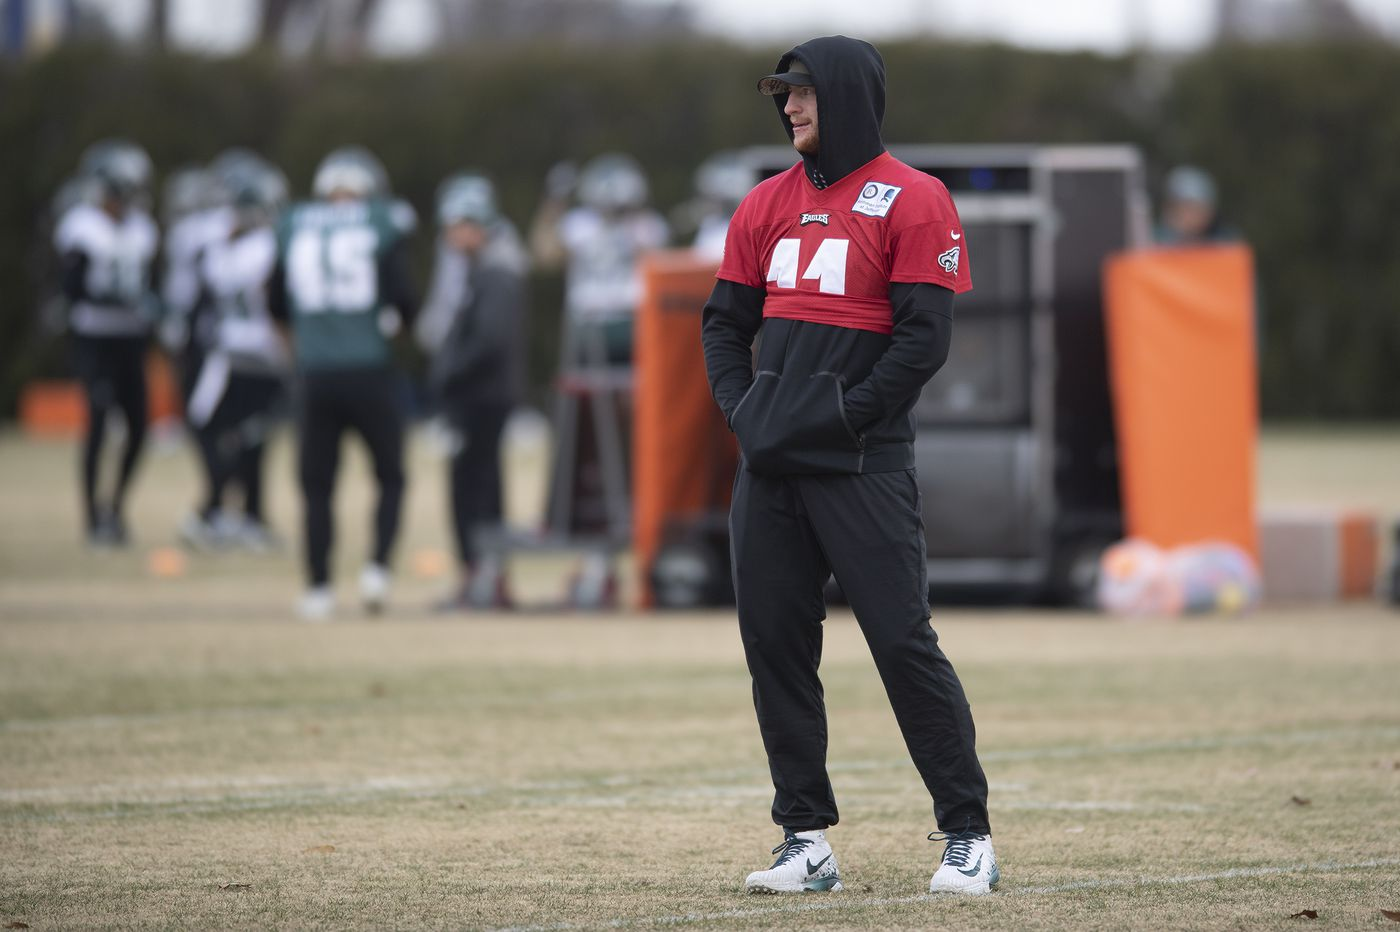 Carson Wentz broke a bone in his back. Here's what that could mean